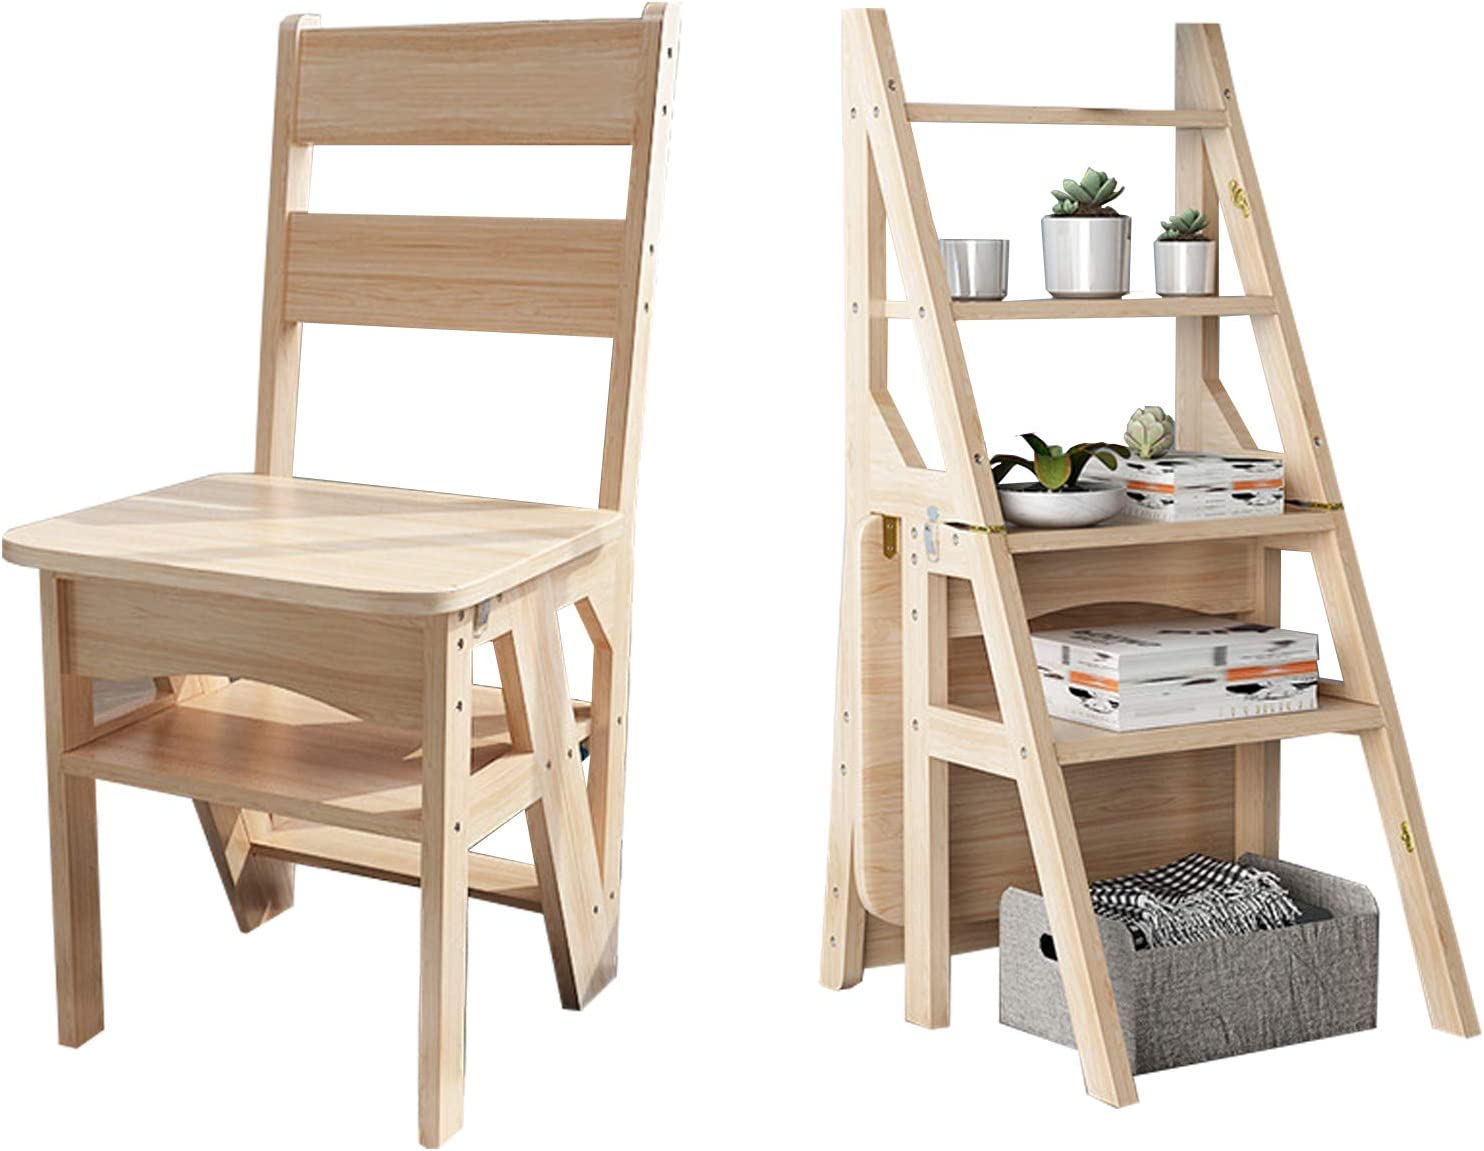 YJX Wooden Folding Max 52% OFF Ladder Stool Rack Portable National products Flower Bench Shoe